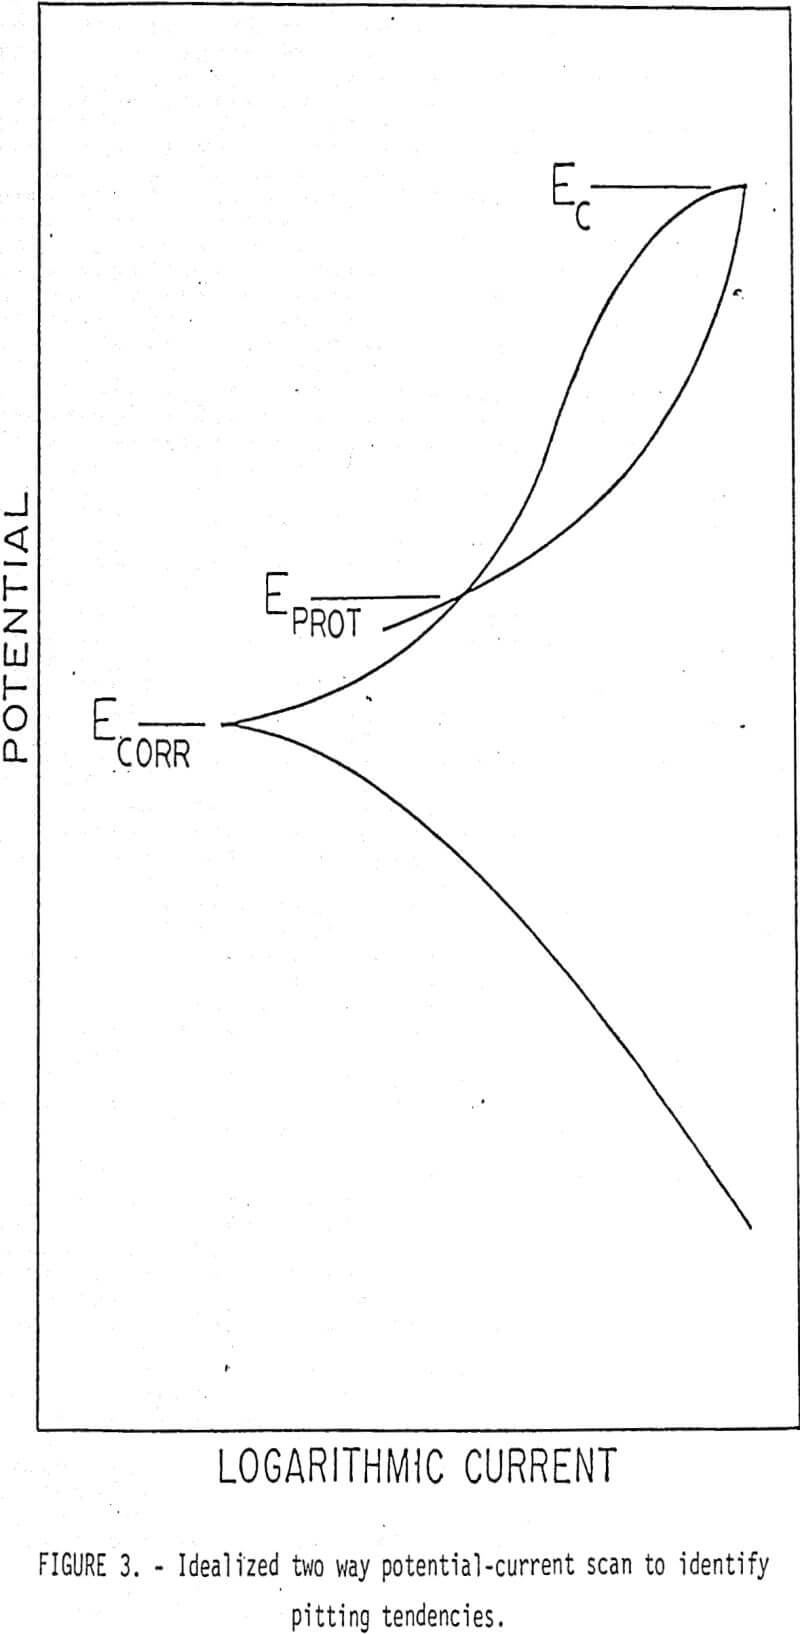 grinding potential current-scan